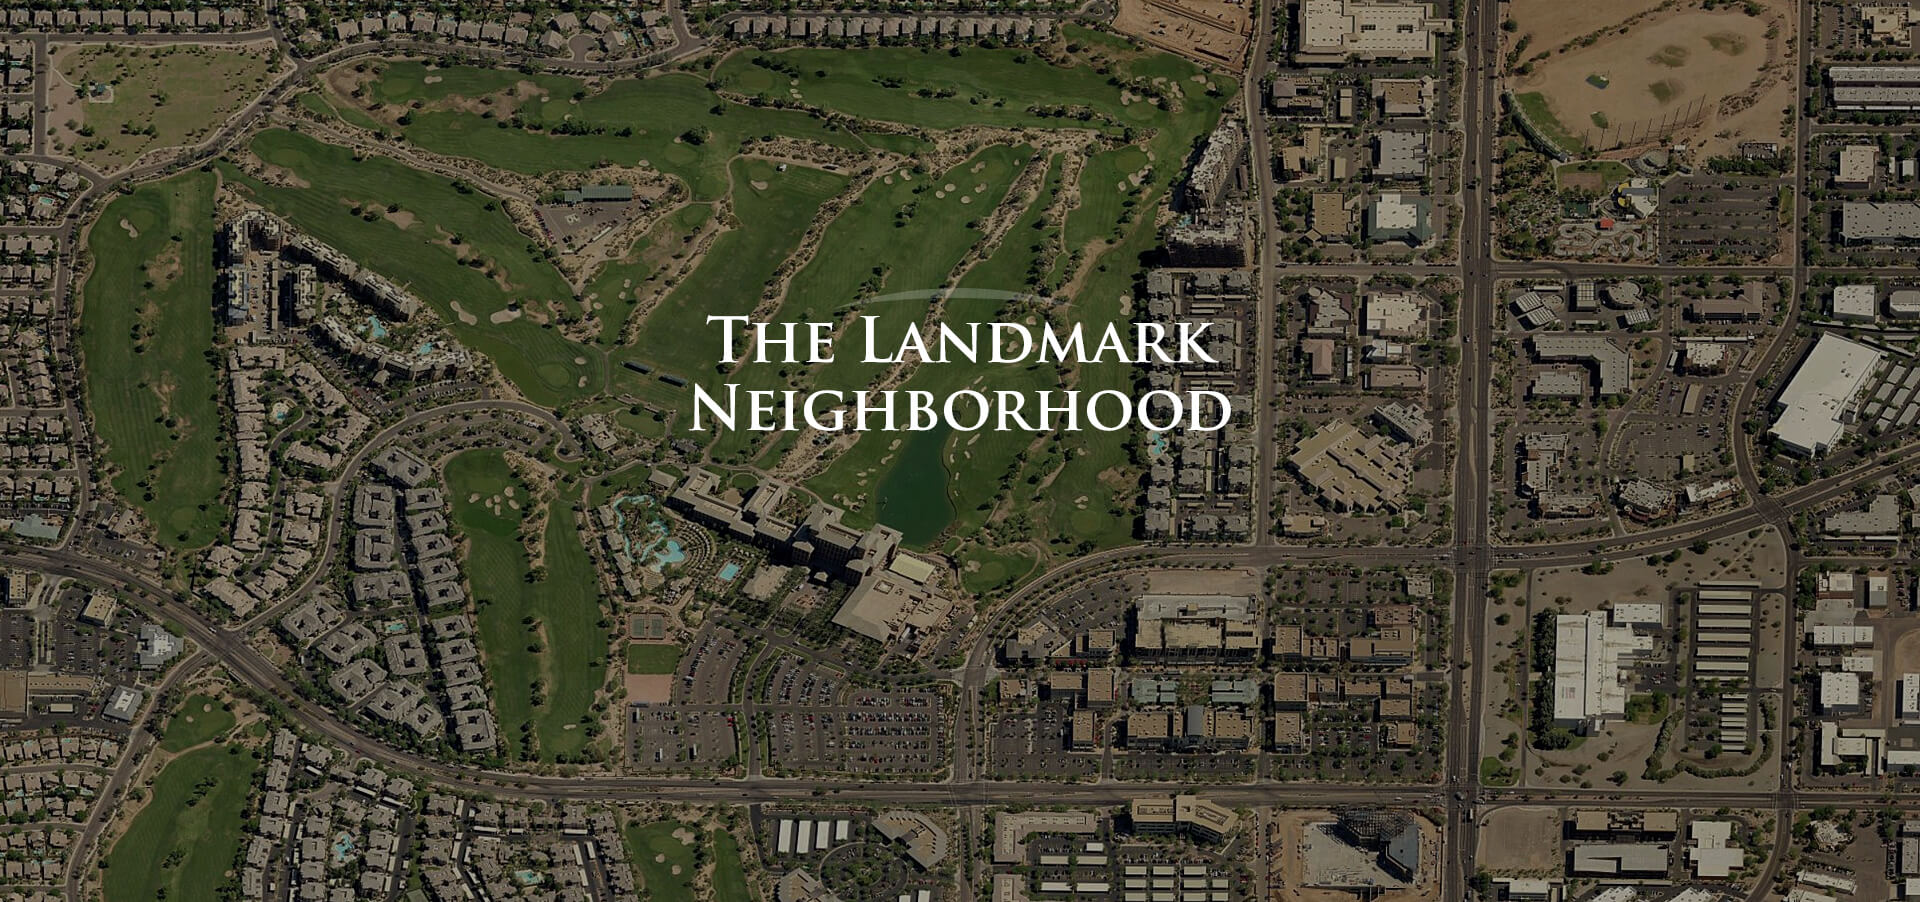 The Landmark Neighborhood